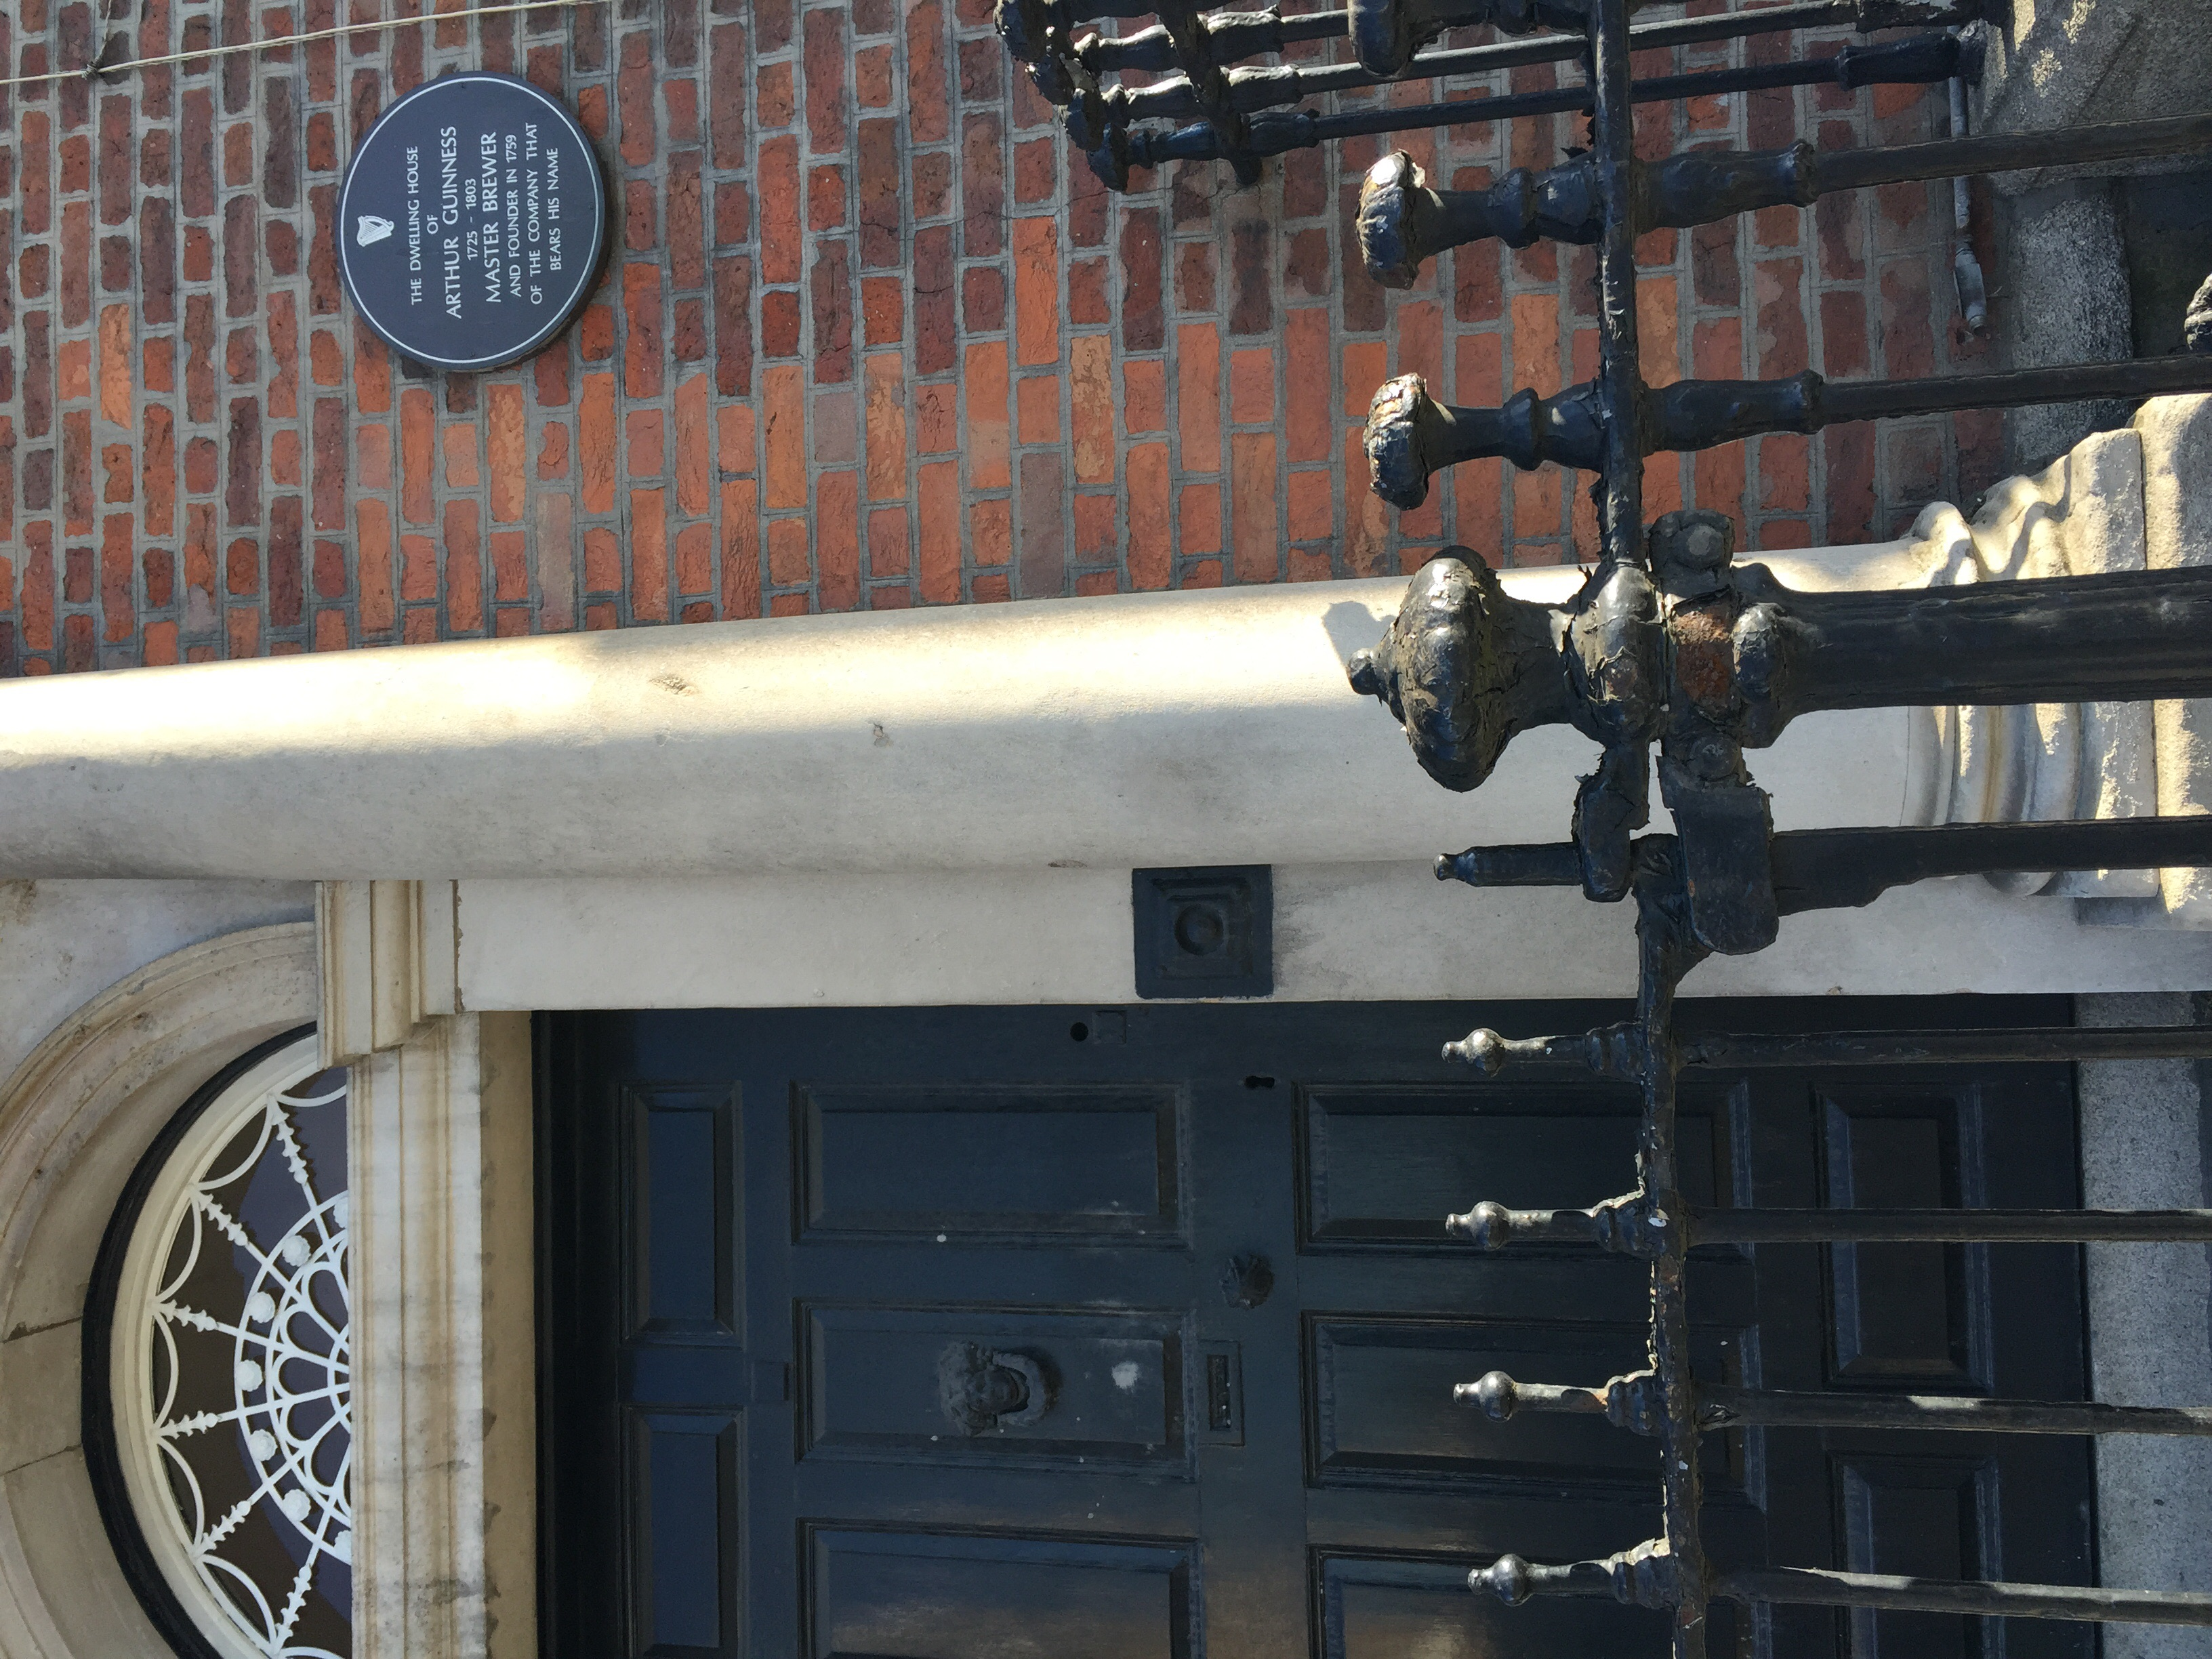 Arthur Guinness's house, right behind the brewery!